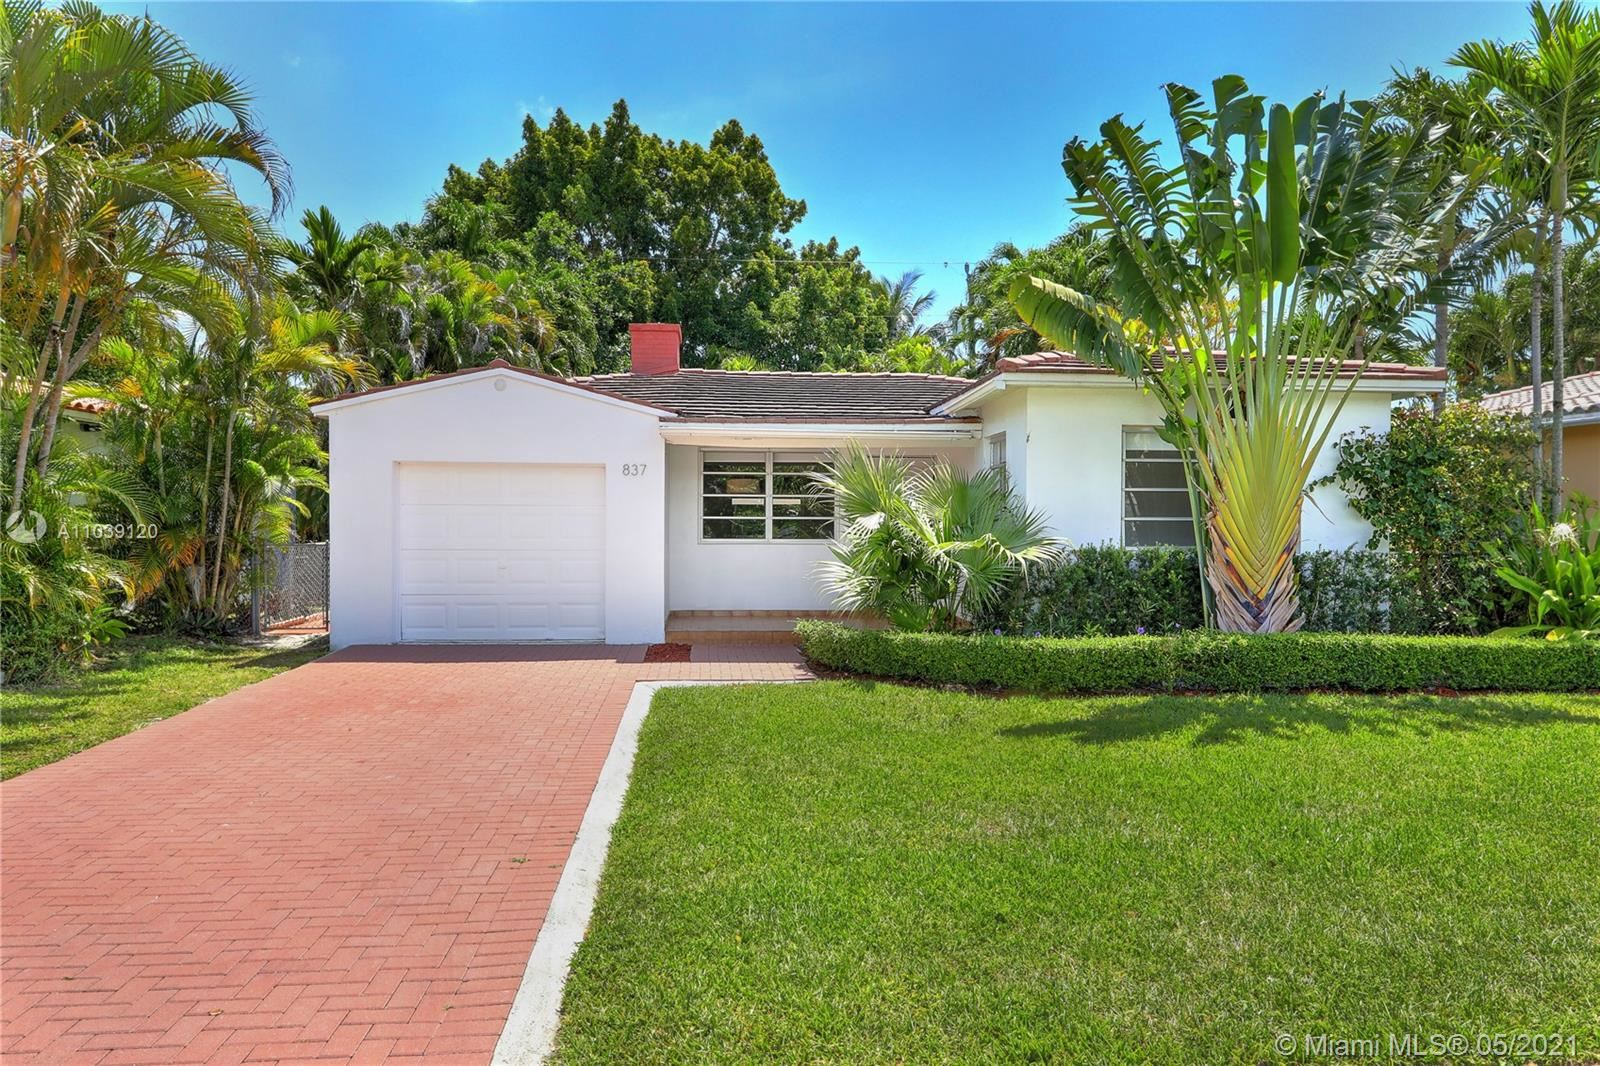 837 Tangier St, Coral Gables, FL 33134 - #: A11039120